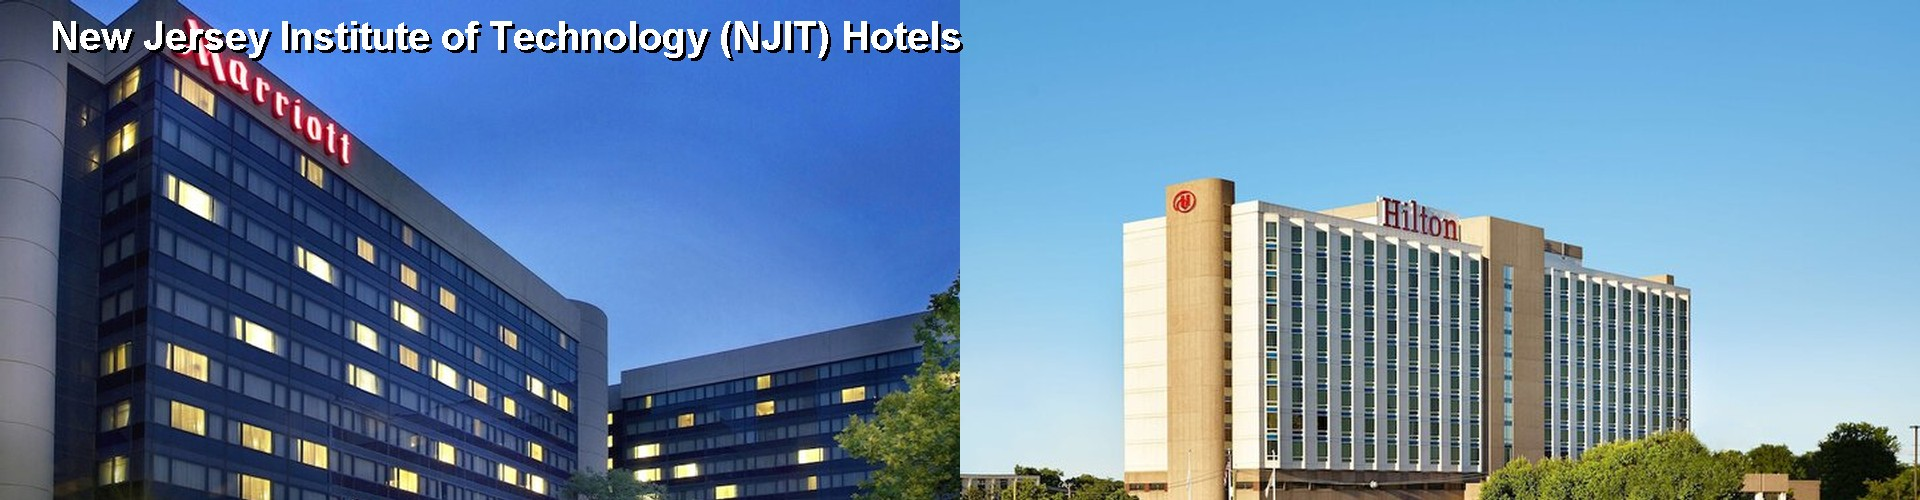 5 Best Hotels near New Jersey Institute of Technology (NJIT)